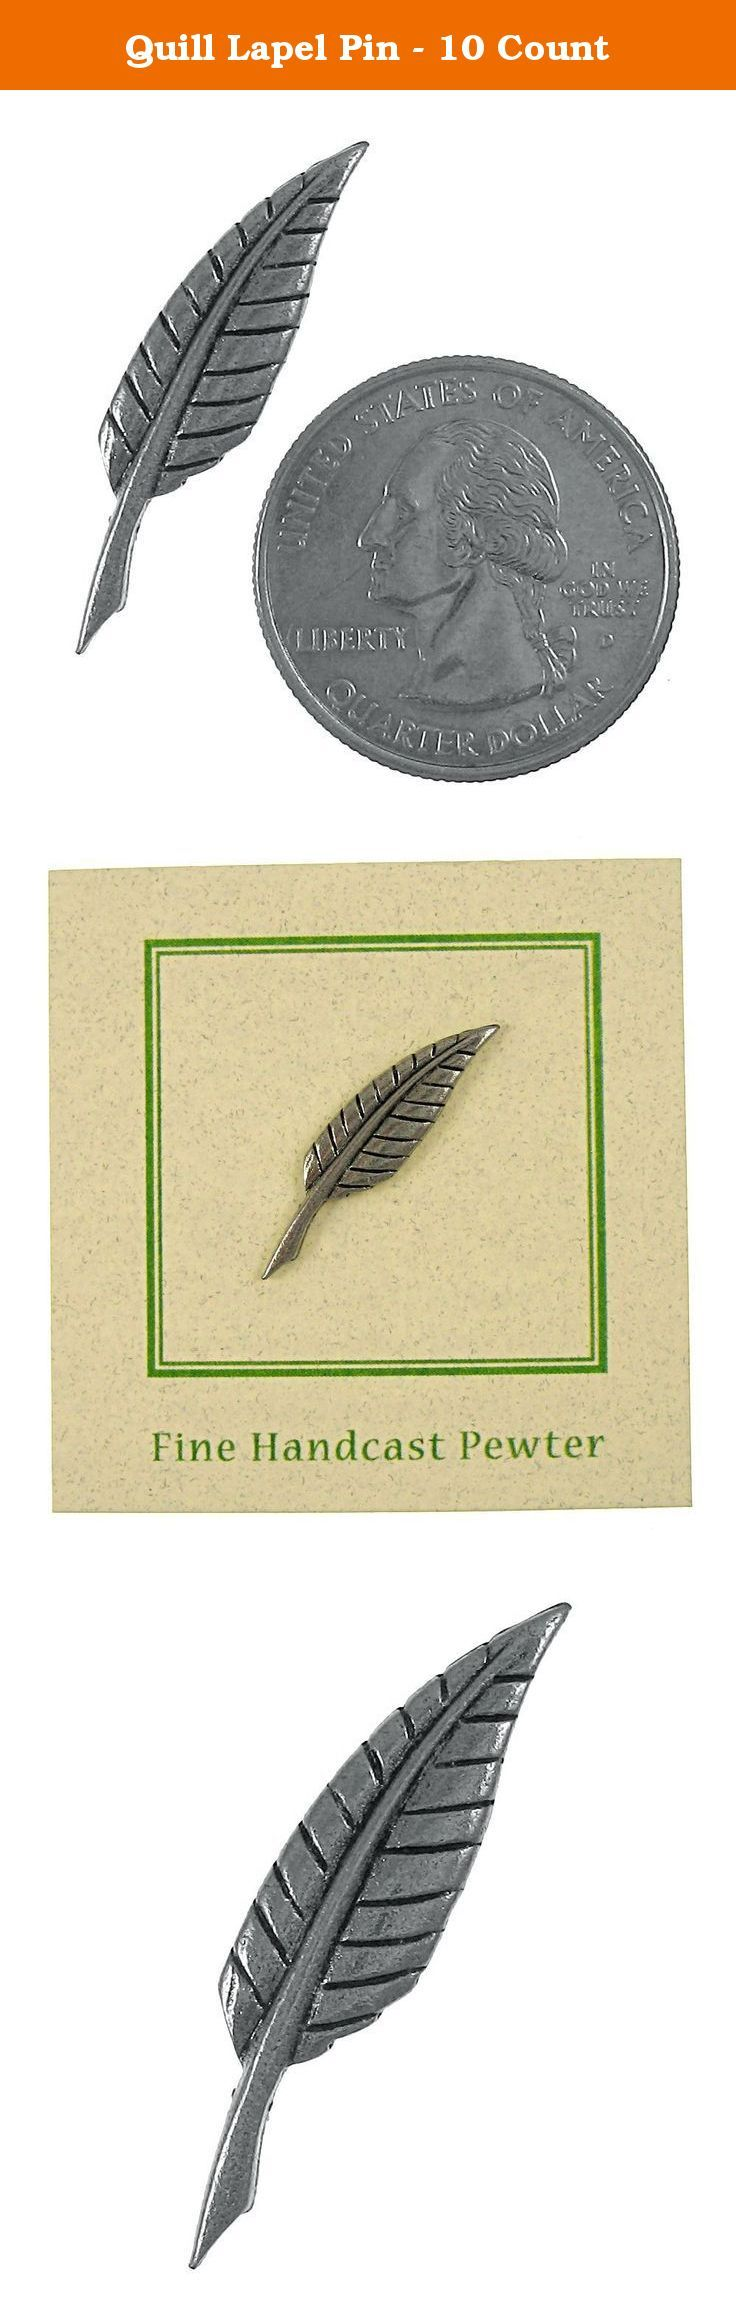 Quill Lapel Pin - 10 Count. Quill pens and inkpots were a standard feature in early business offices. Wear a piece of history on your lapel with our quill pin. Handcast in solid, lead-free pewter, each of our pins is an original three dimensional sculpture signed by the artist, Jim Clift. Handcrafted in our studio in Coventry, RI, our pins are 100% US made.